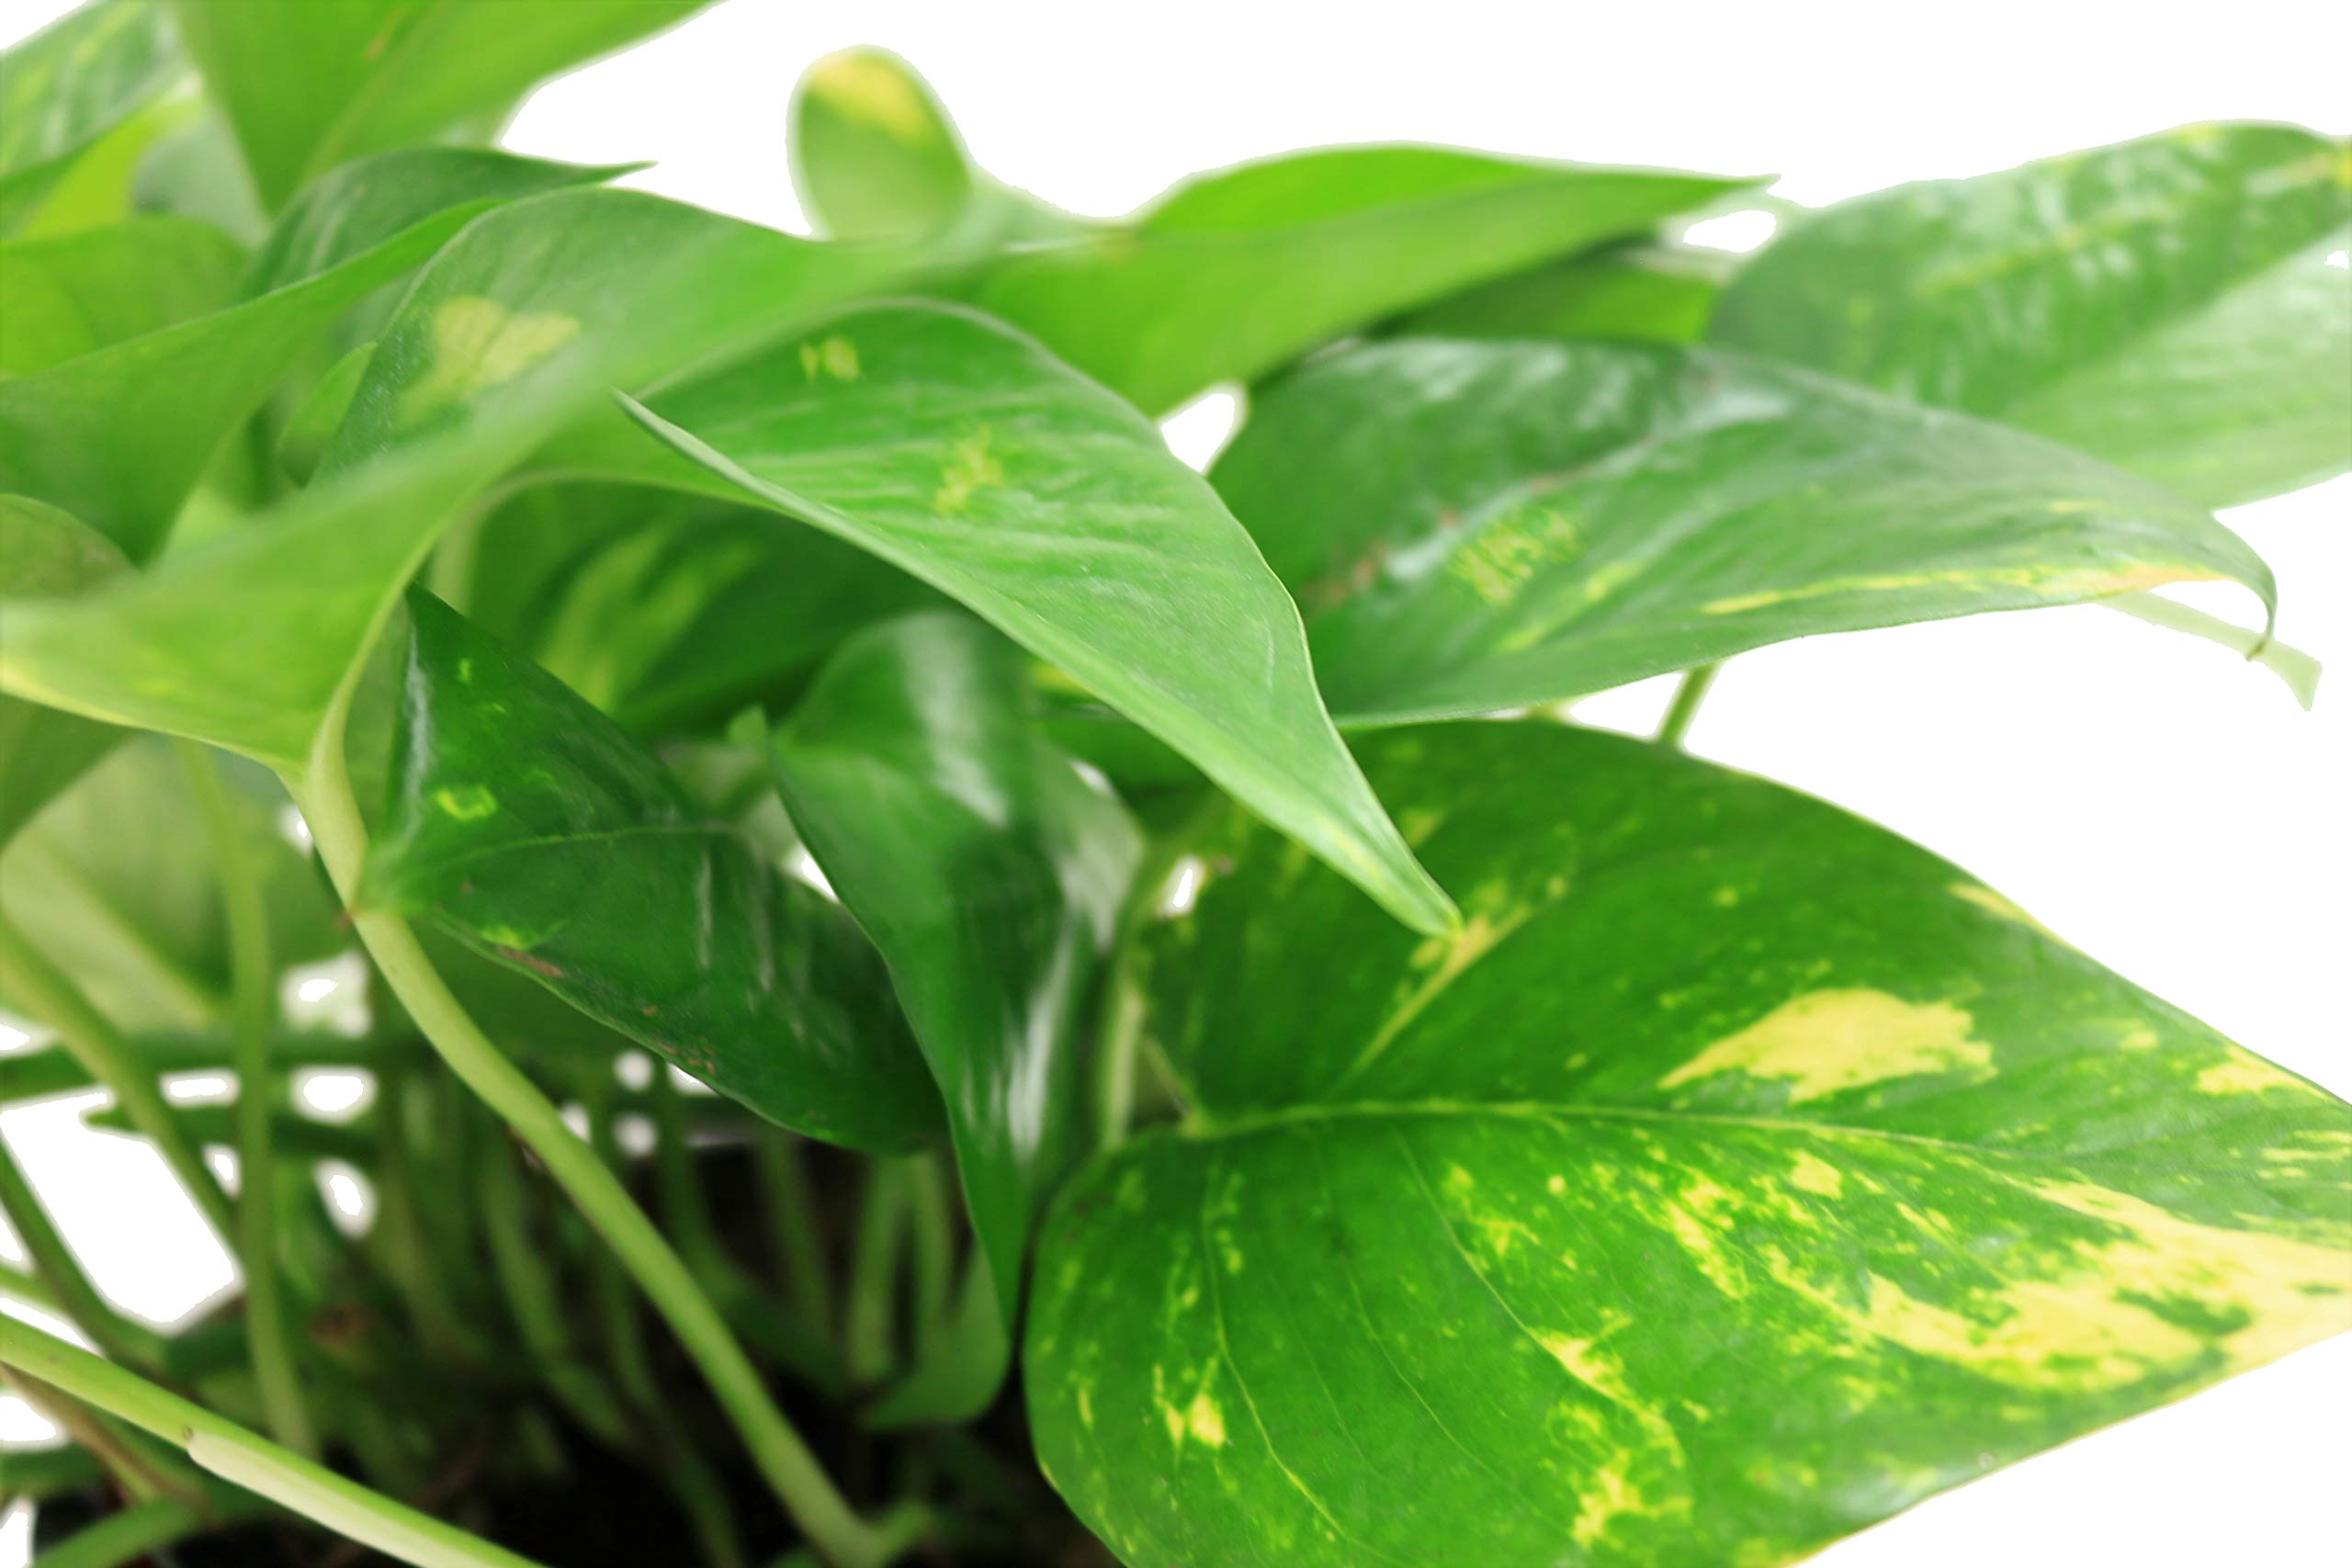 Costa Farms Golden Pothos Devil's Ivy Live Indoor Plant, 6-Inch, Ships in Grower's Pot by Costa Farms (Image #3)